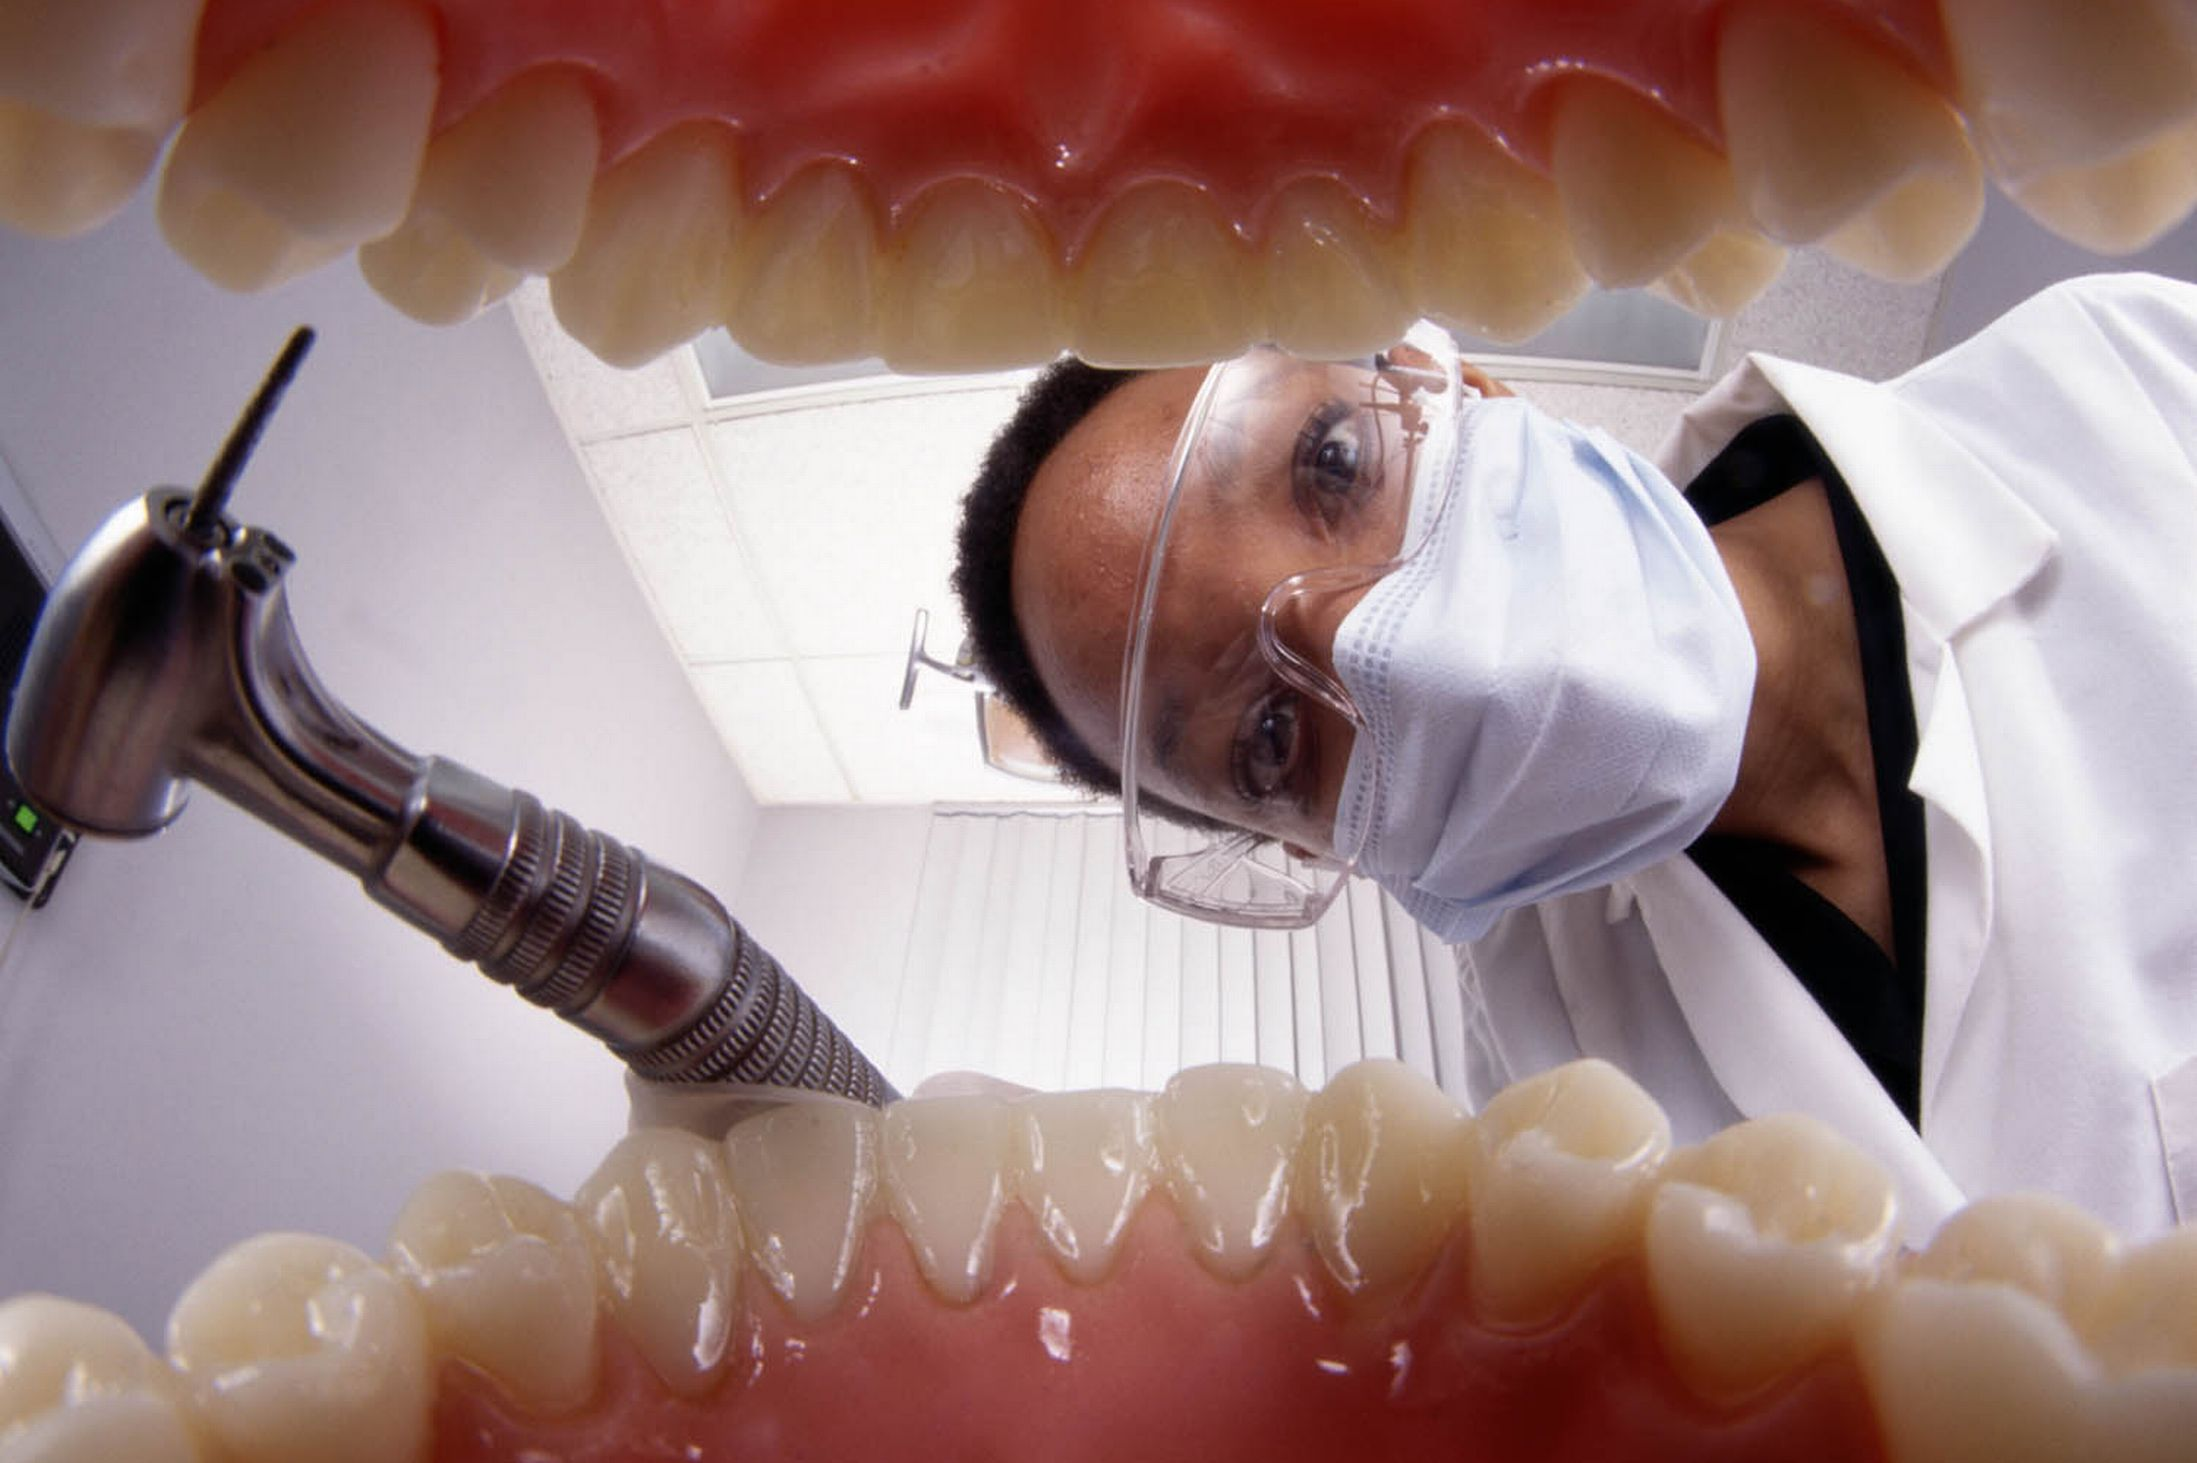 dentist looking inside mouth